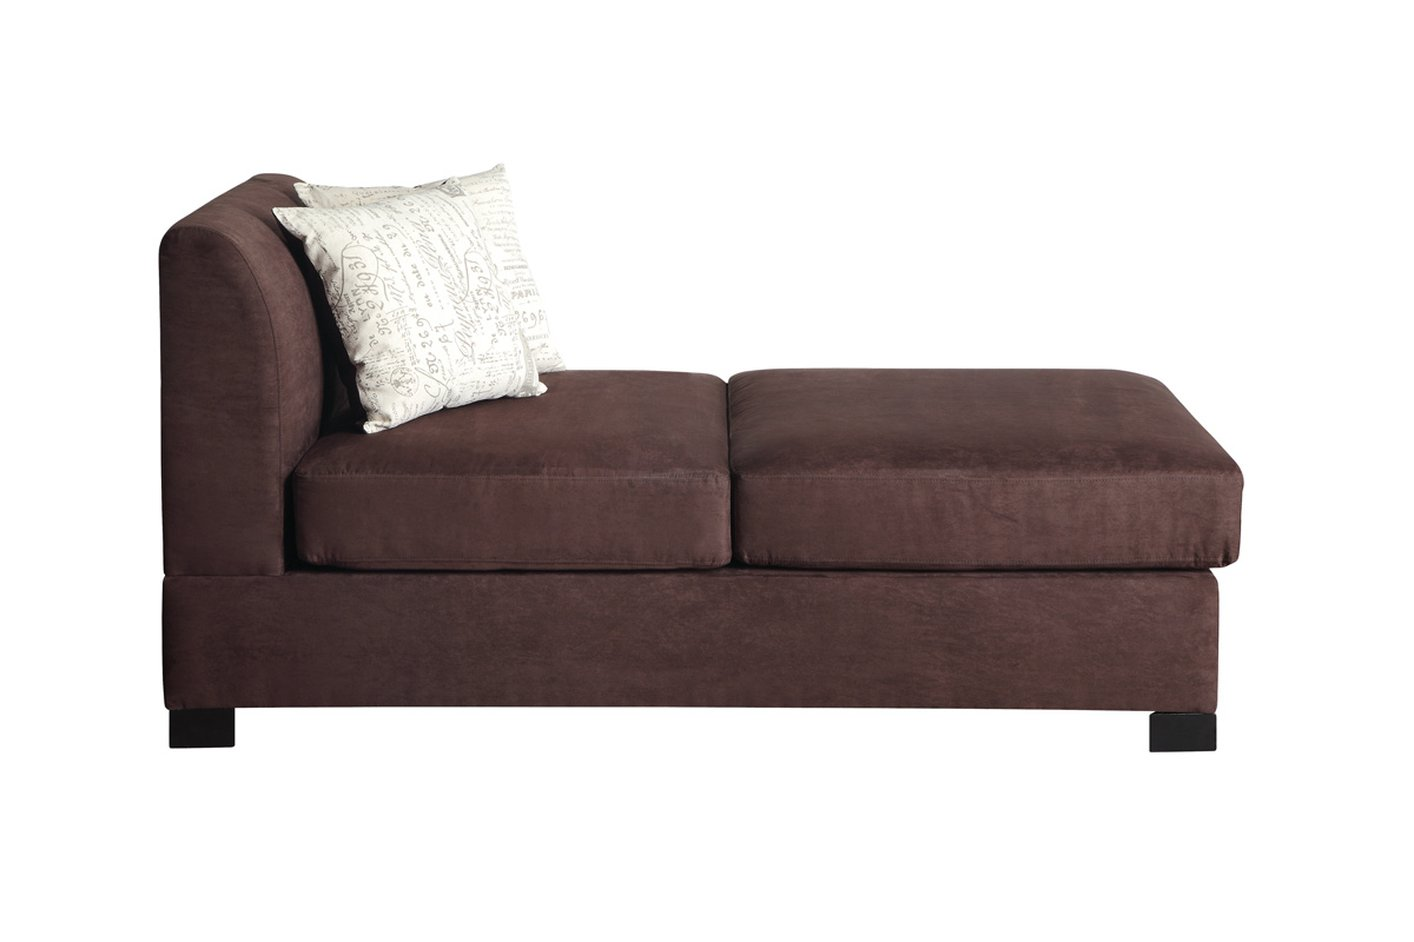 Poundex Nia F7979 Brown Fabric Chaise Lounge Steal A Sofa Furniture Outlet Los Angeles Ca